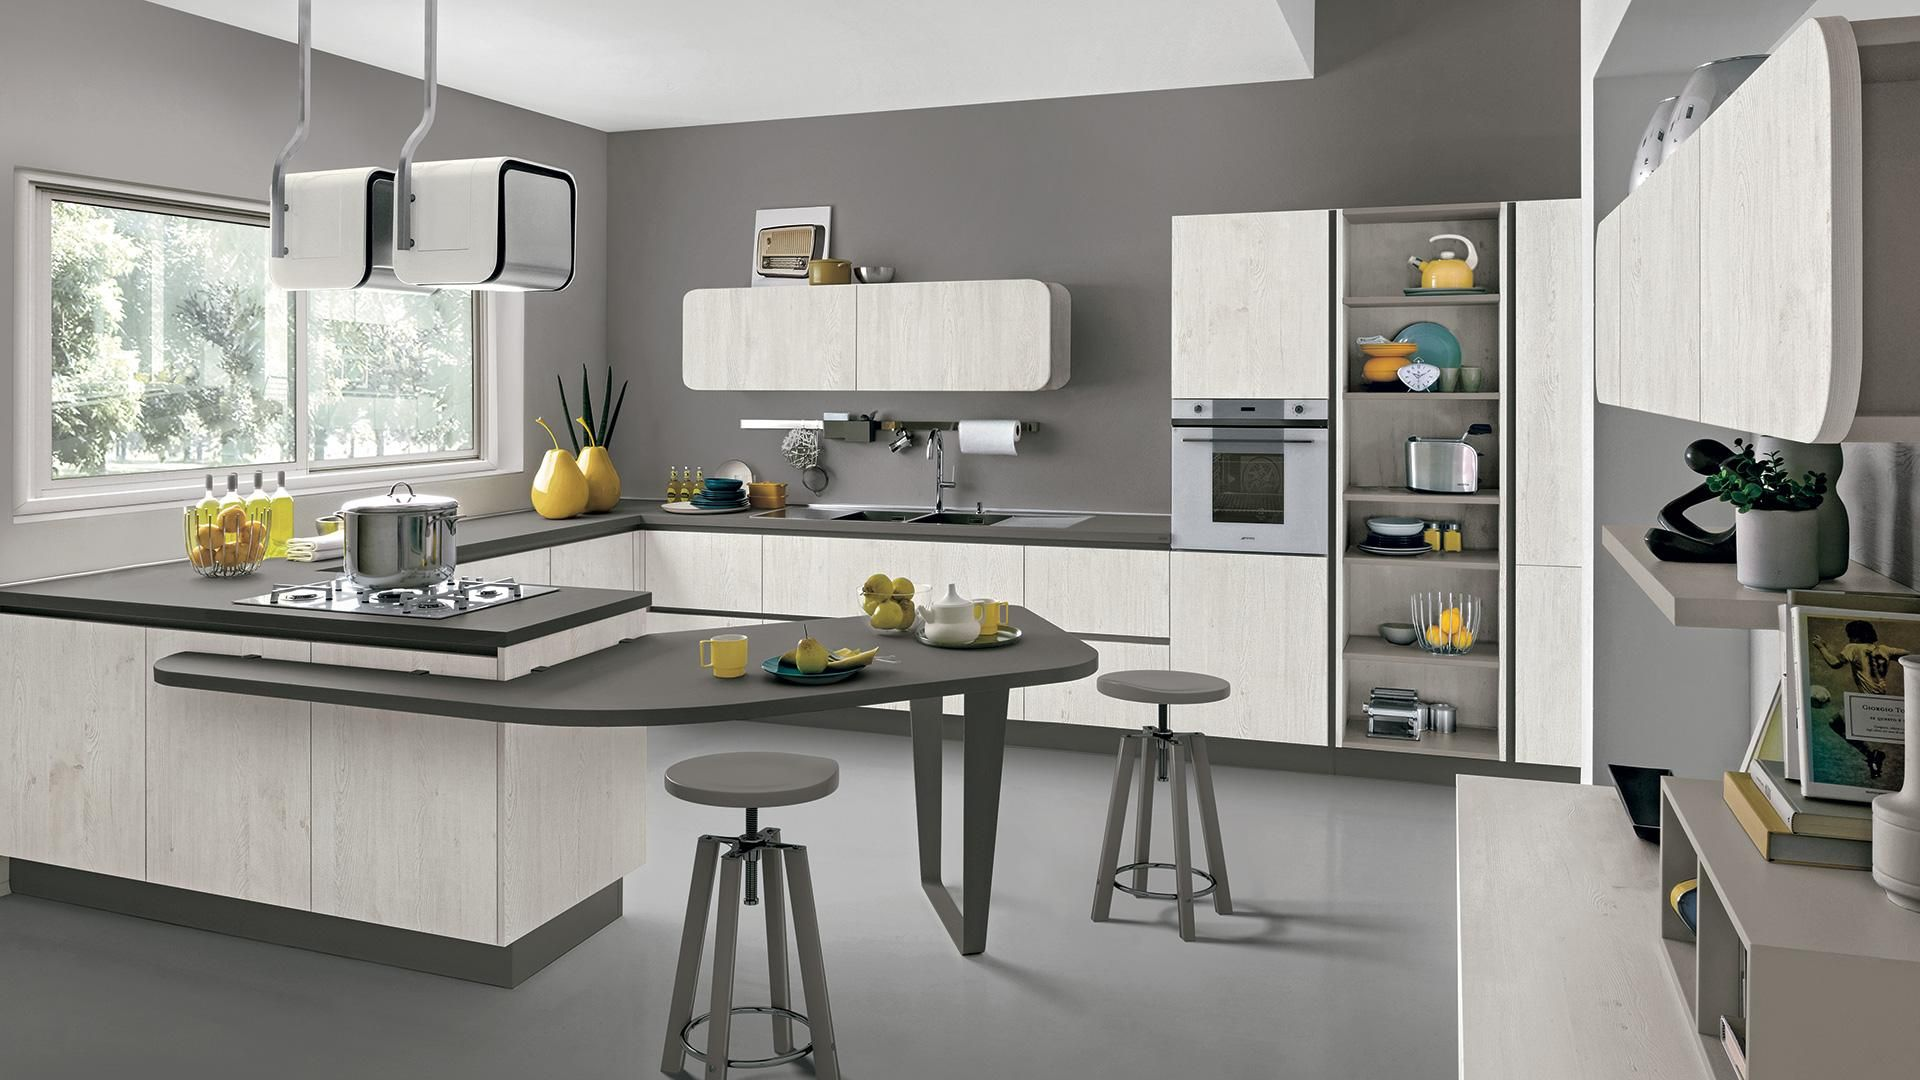 Cucina Americana Immagina Neck Cucine Lube Spaces Where Eating Is A Pleasure